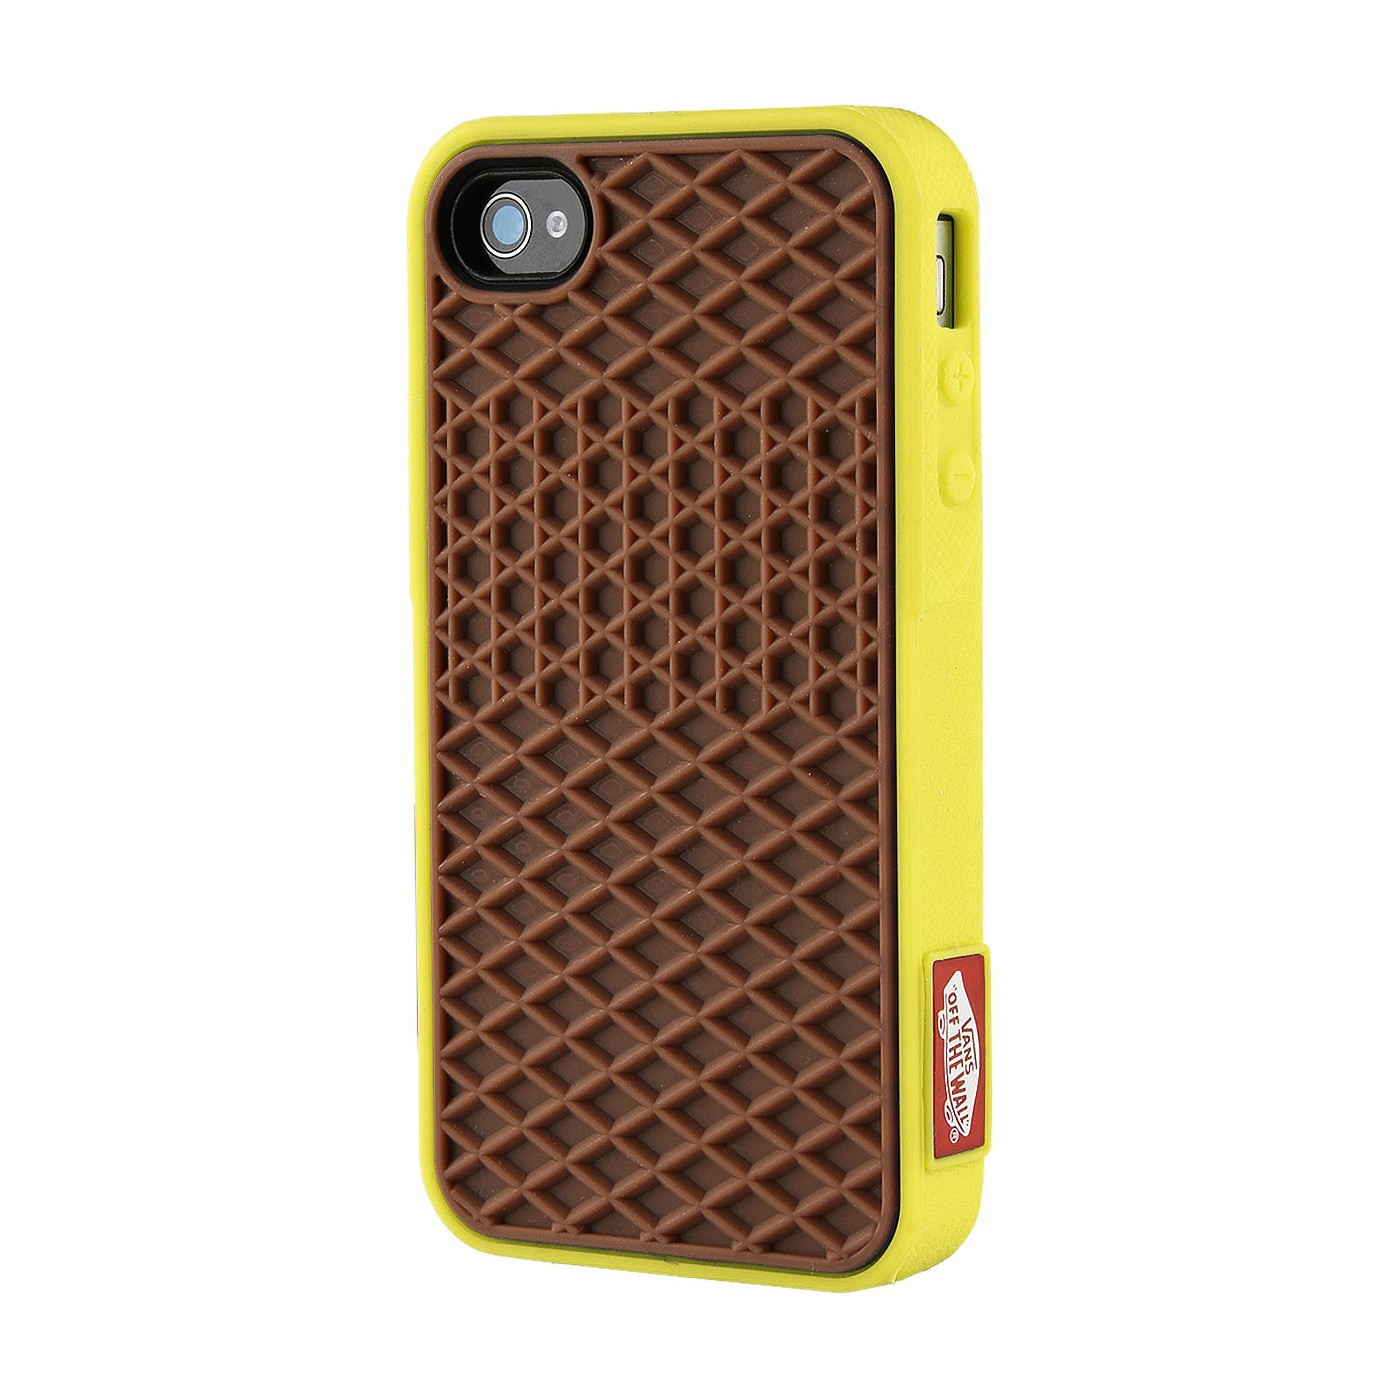 Vans Case til iPhone 4 / 4S - Gul